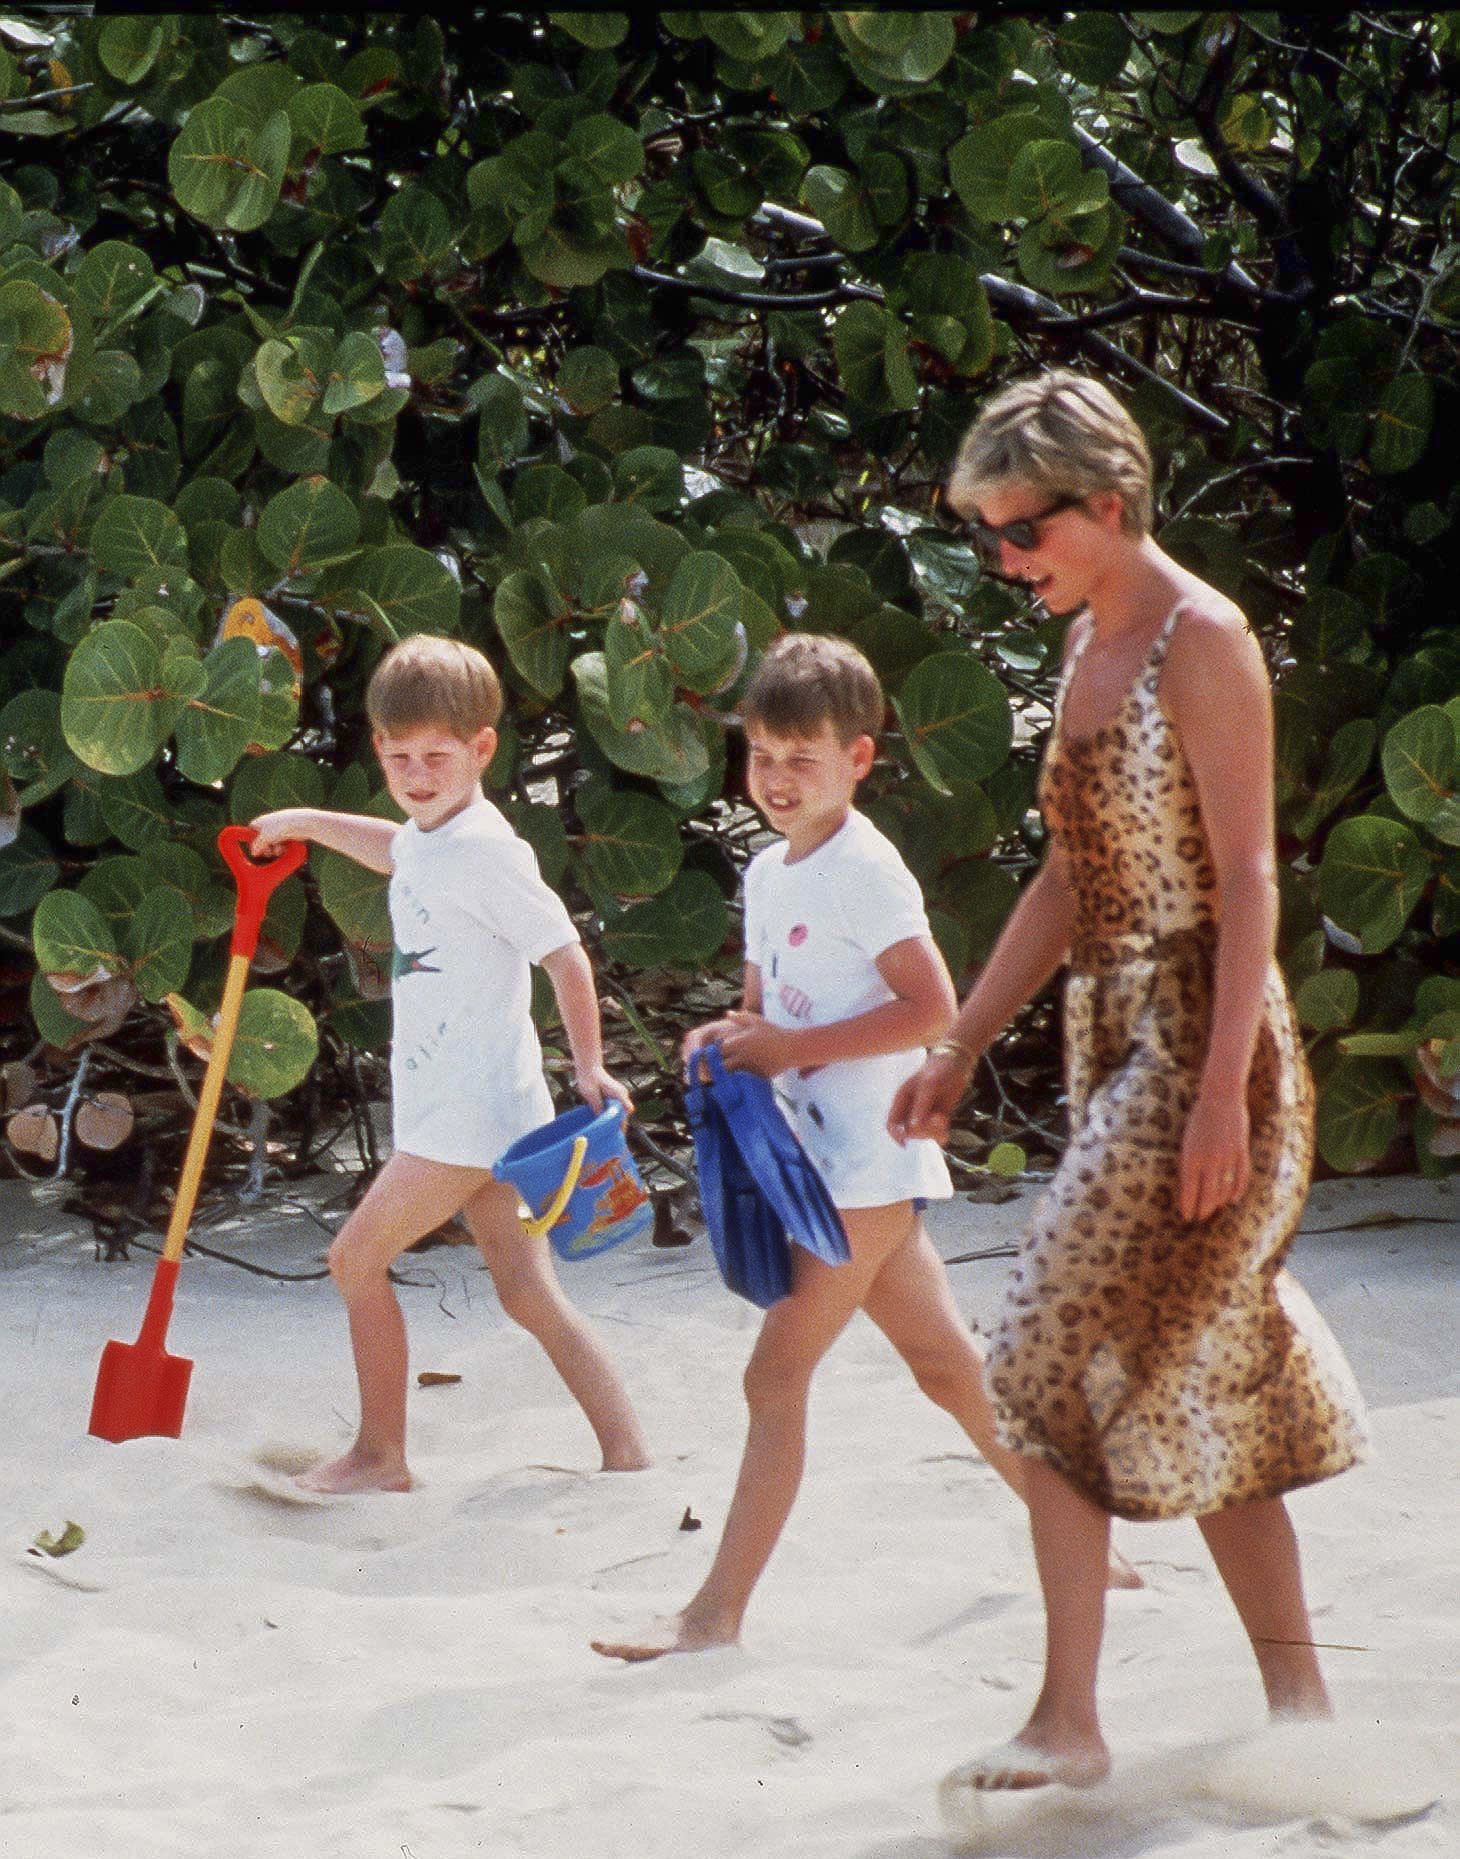 NECKER ISLAND, BRITISH  VIRGIN ISLANDS - APRIL 11:  Diana, Princess of Wales, with Prince William, and Prince Harry, on Holiday In Necker Island In The Caribbean, on April 11, 1990, in the British Virgin Islands. (Photo by Julian Parker/UK Press via Getty Images)